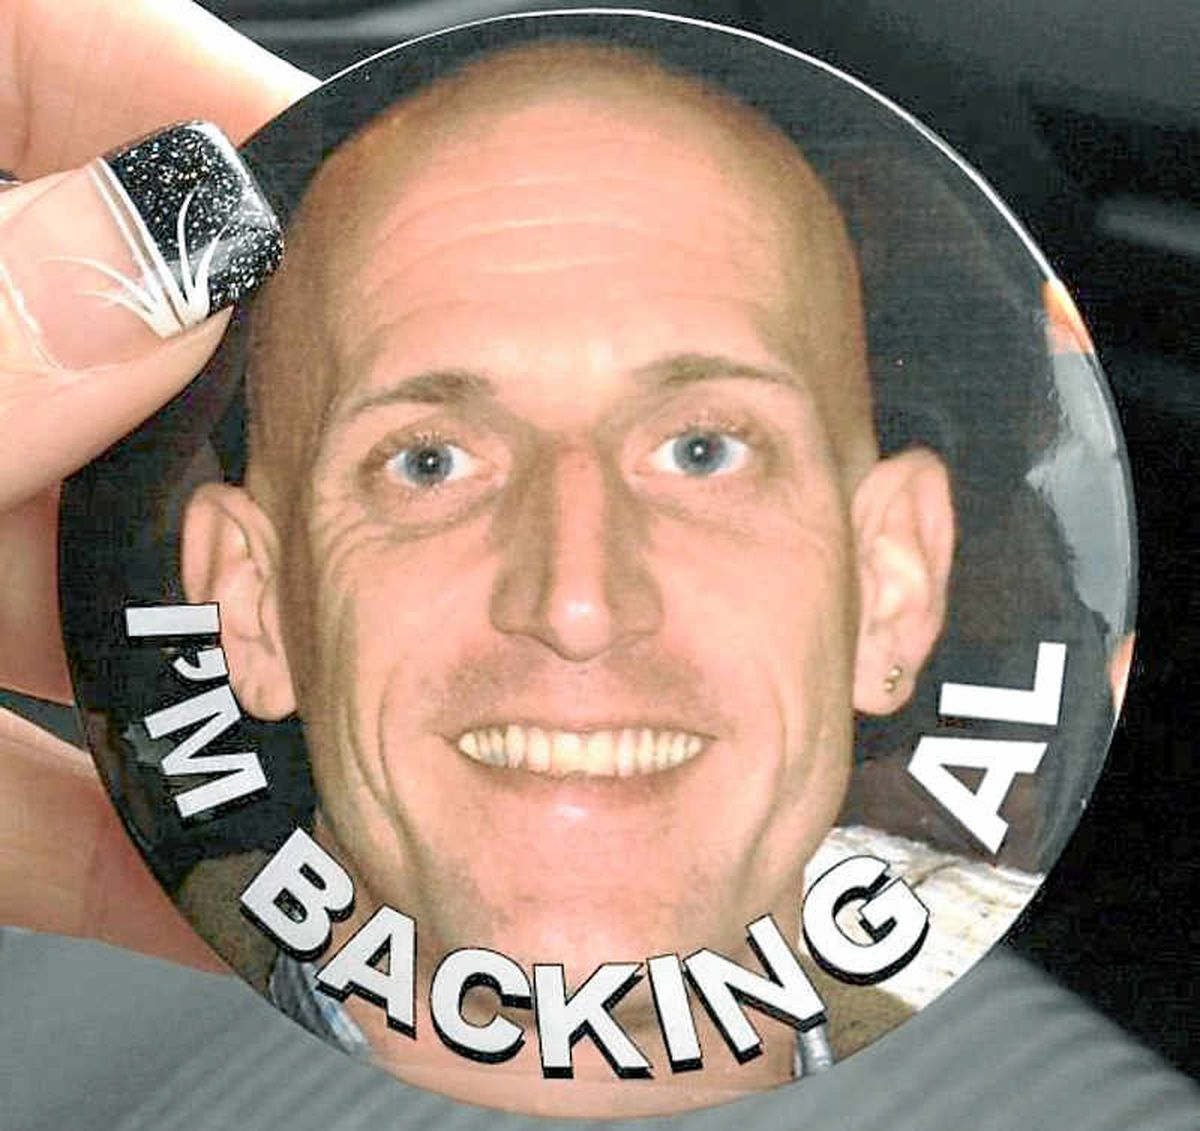 A badge with the phrase 'I'm backing Al